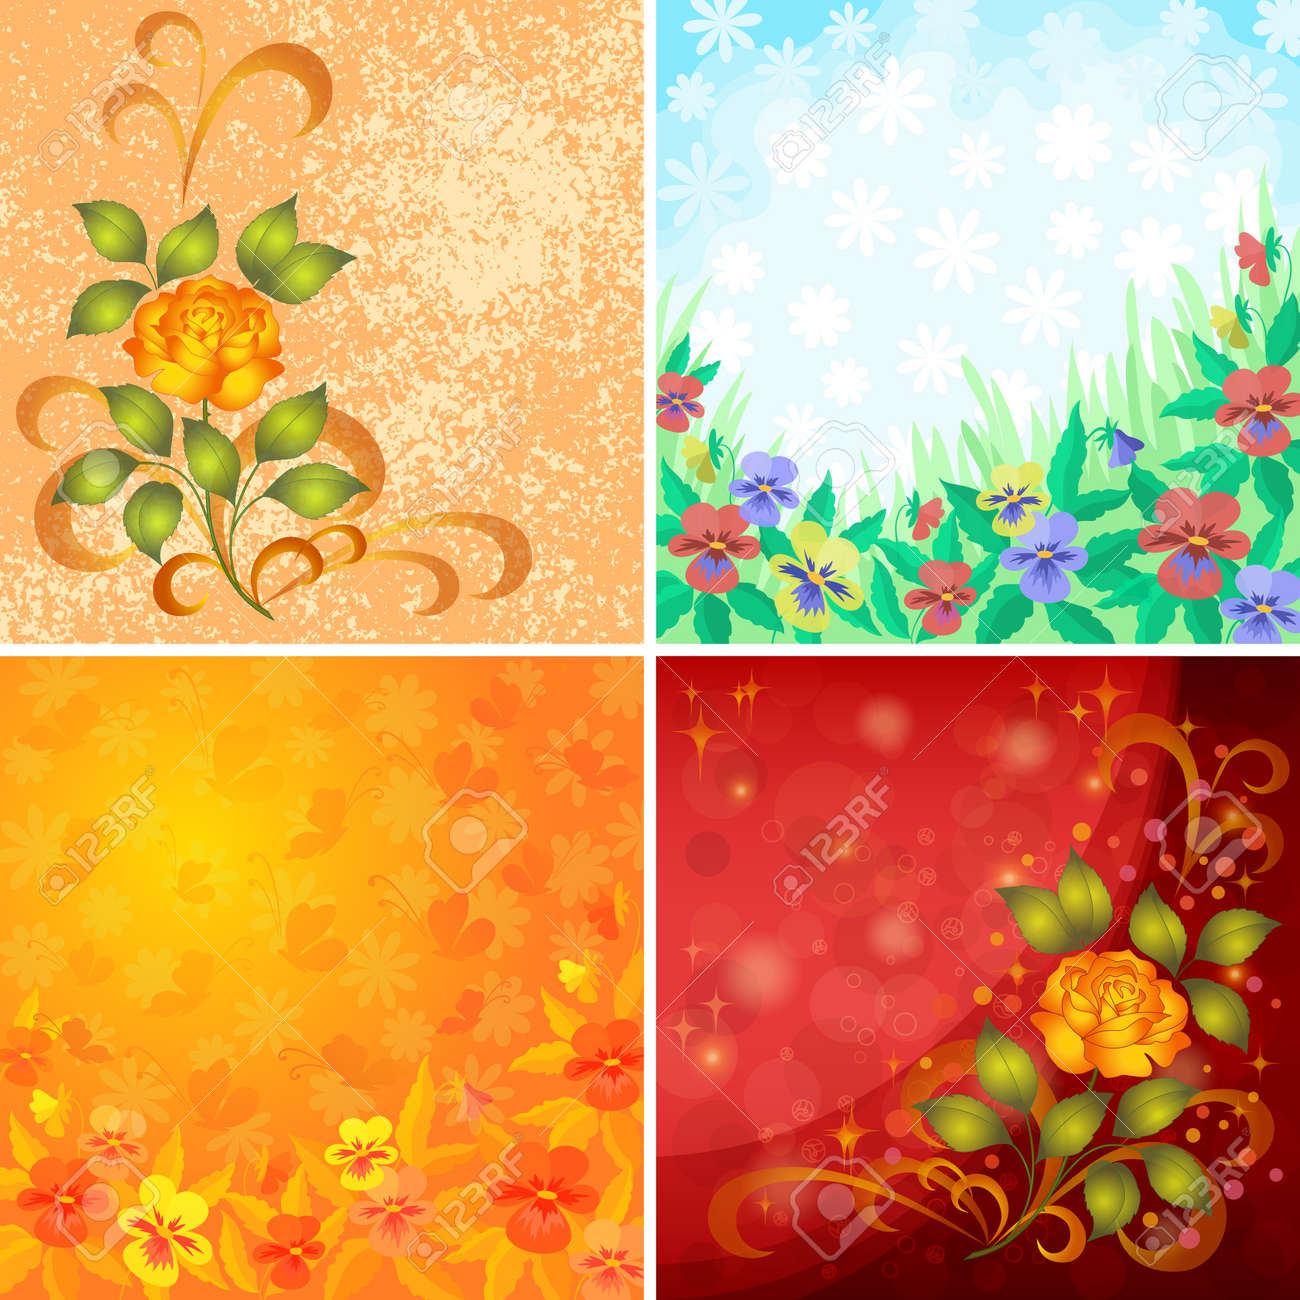 Set abstract holiday floral backgrounds with flowers pansies, roses and butterflies Vector eps10, contains transparencies - 14420528